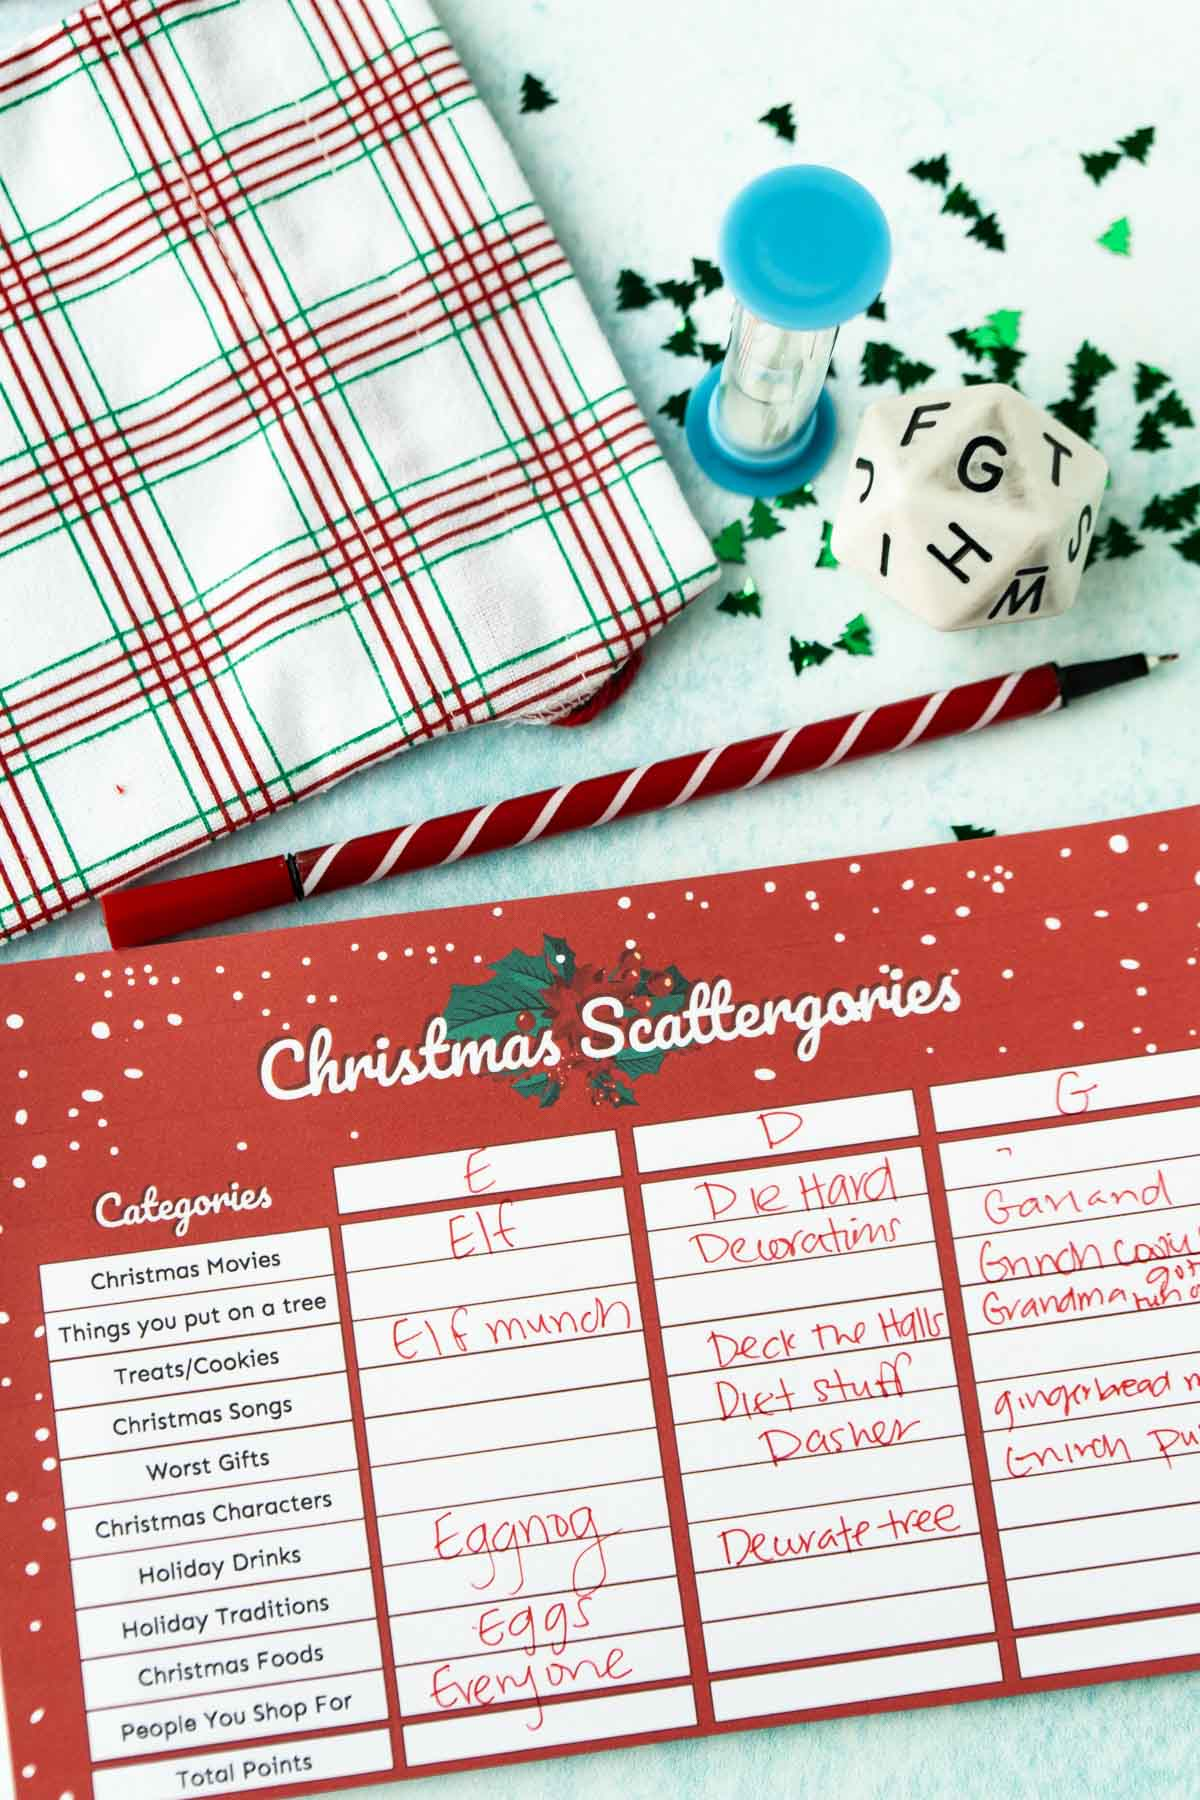 Christmas Scattergories card with answers written